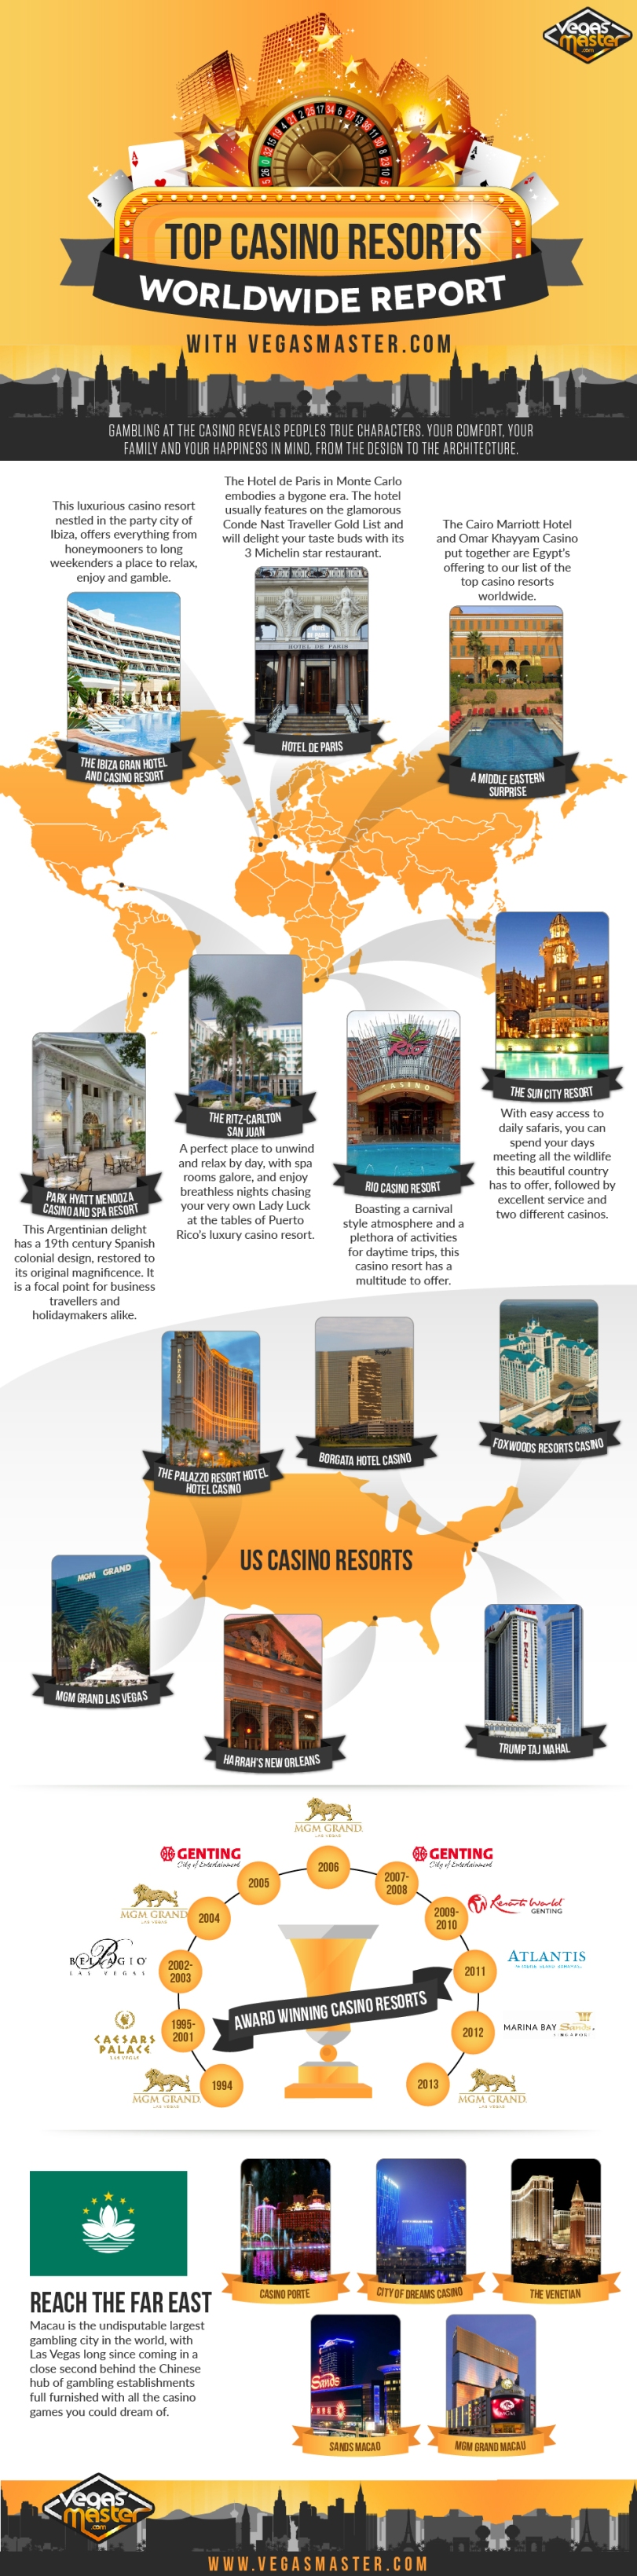 Top Casino Resorts Worldwide Report by VegasMaster.com